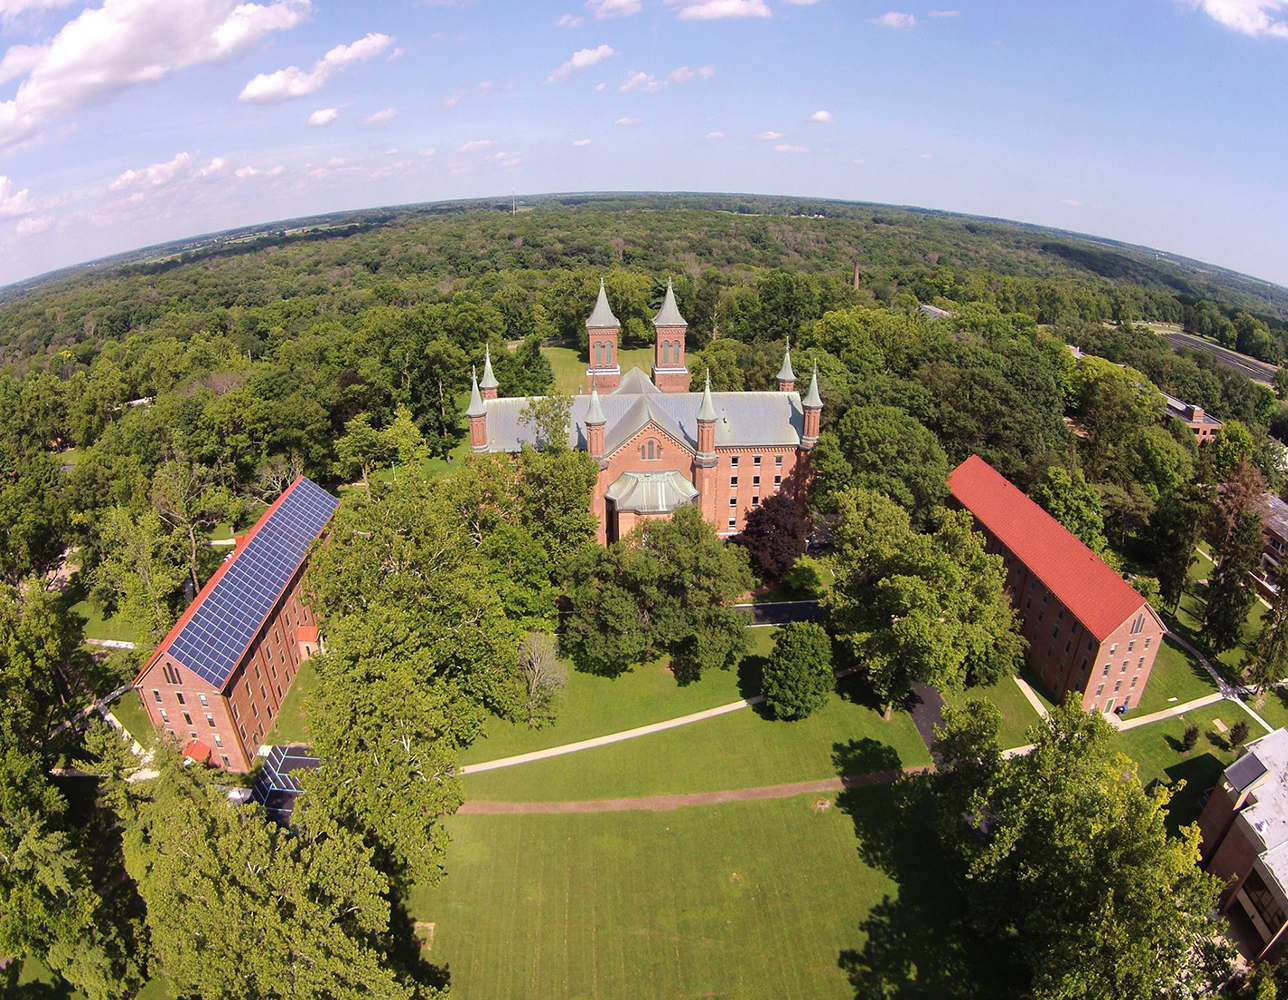 ANTIOCH COLLEGE CAMPUS